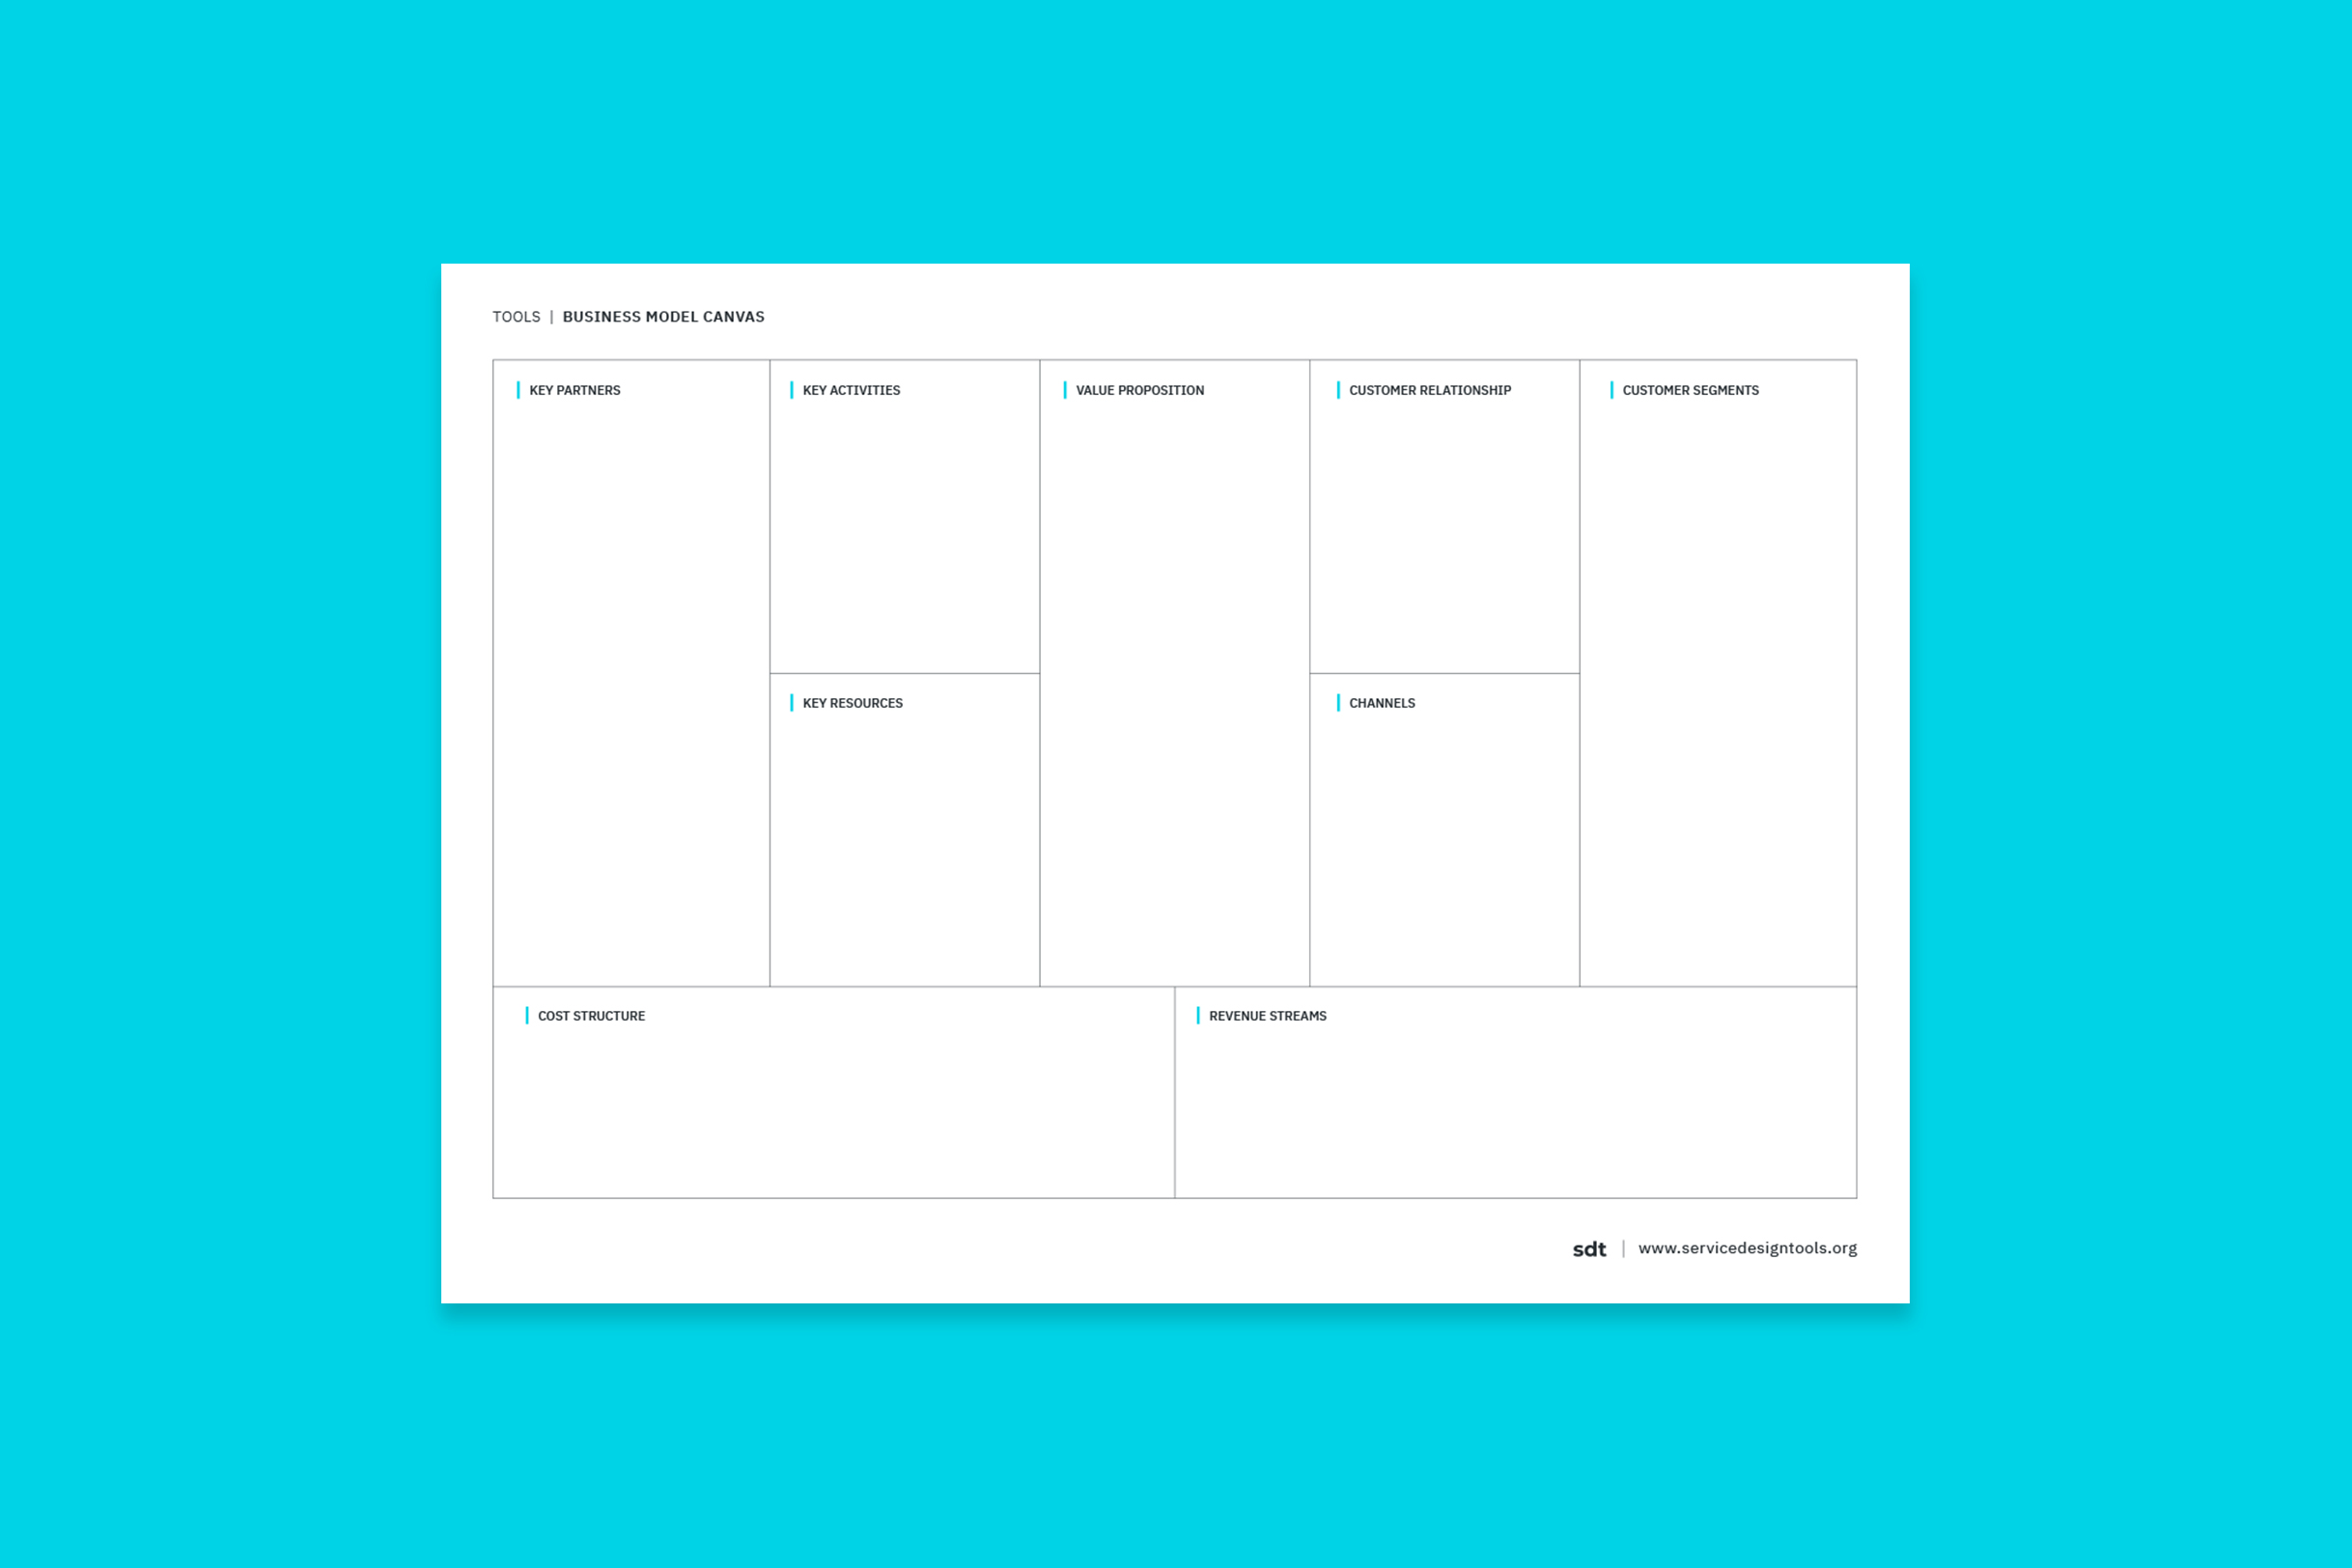 Business Model Canvas Service Design Tools